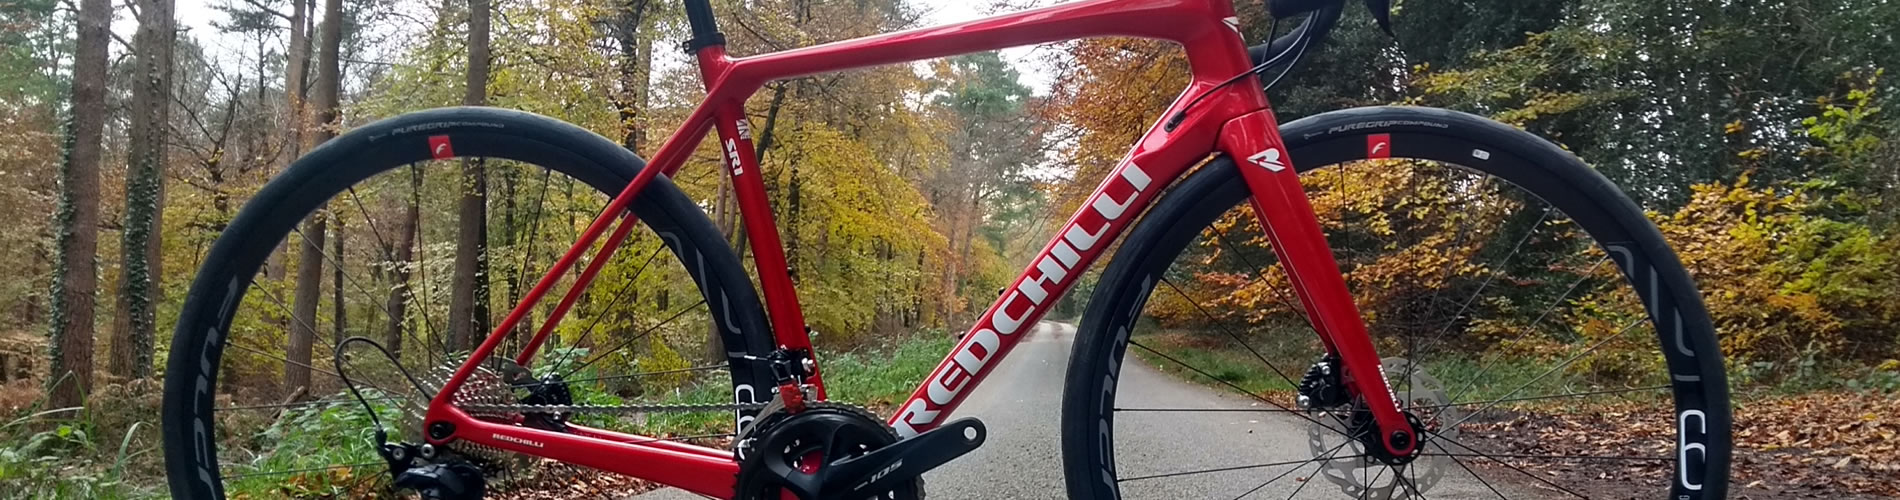 Redchilli Bikes: It's All About You